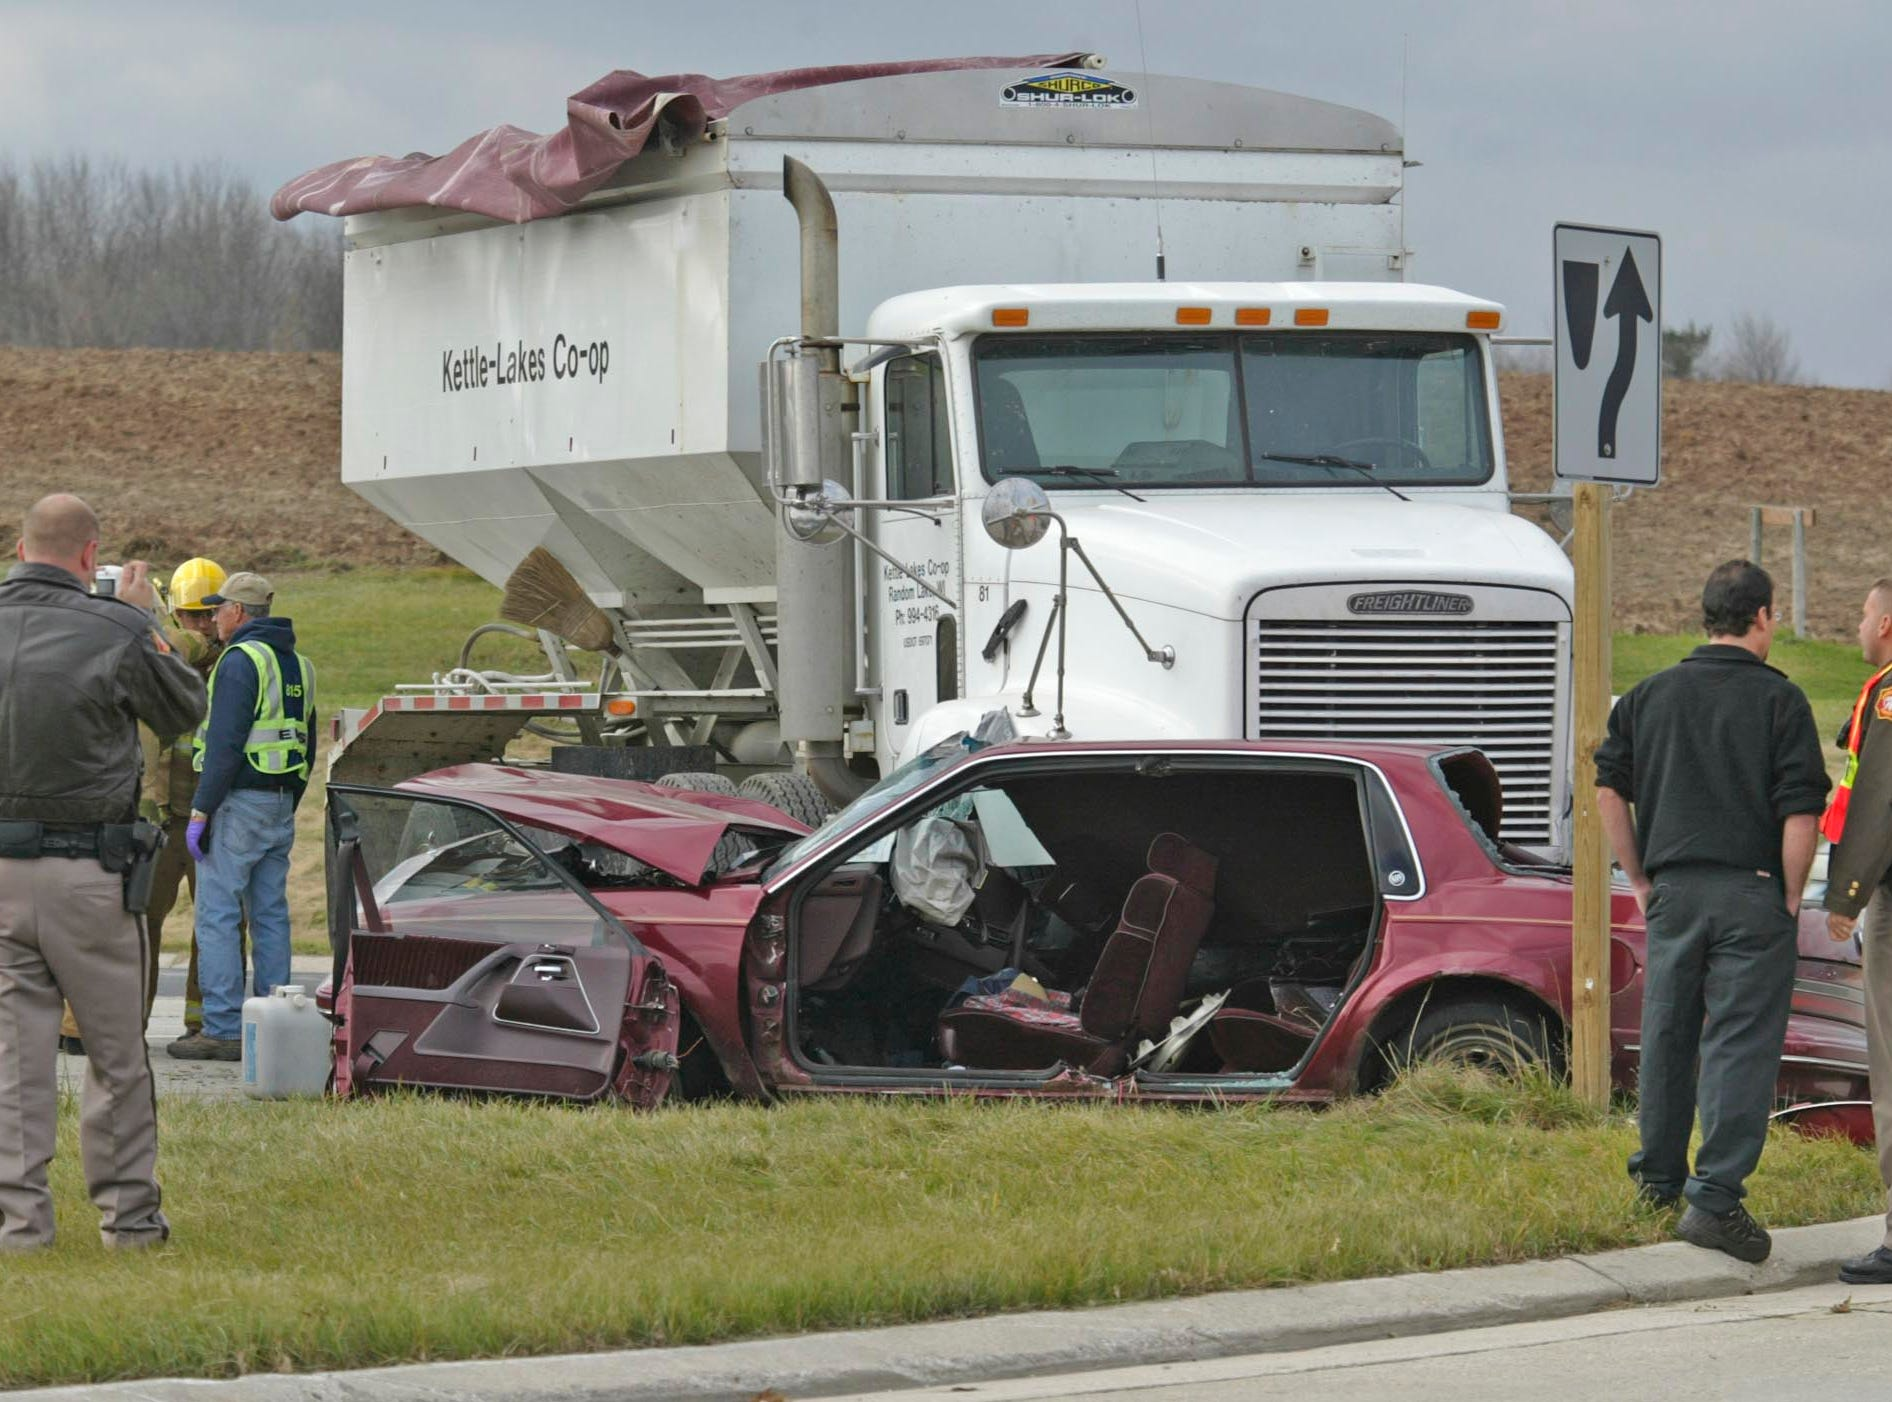 Sheboygan County Sheriff's deputies investigate an accident, Monday, Nov. 5, 2007, after a grain truck and car collided at state Highway 23 and county Highway TT.